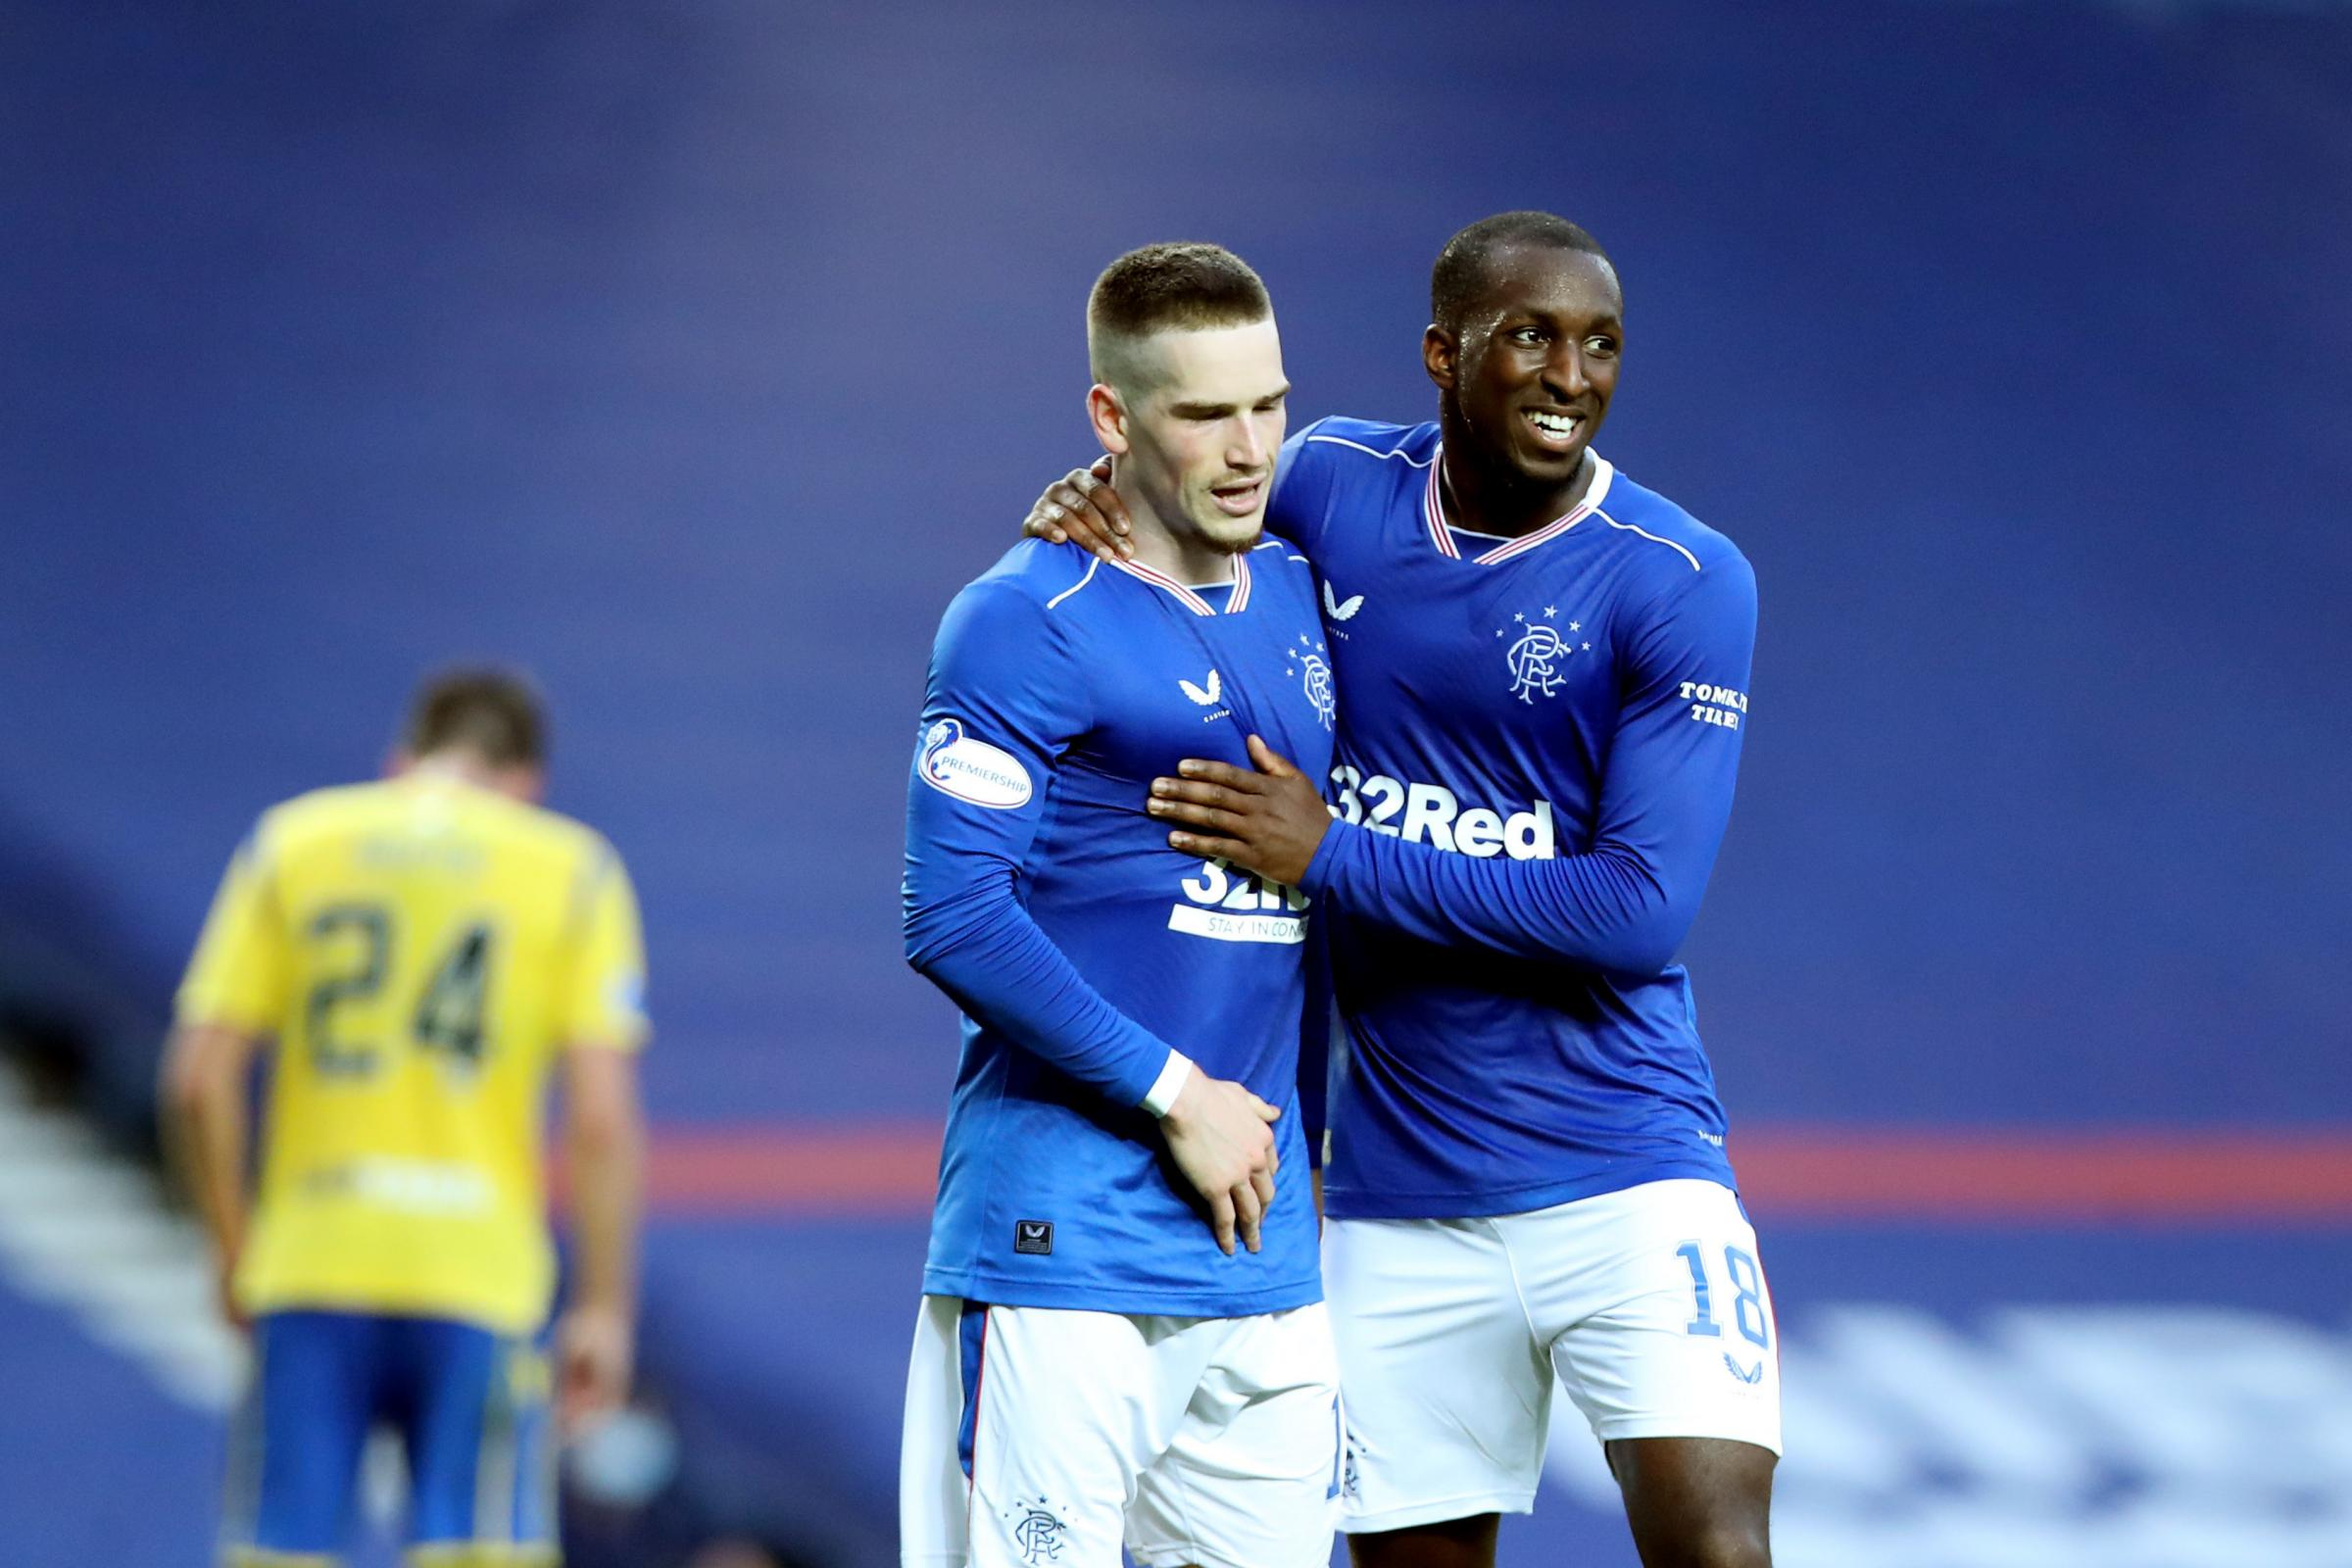 Rangers 3-0 St Johnstone: Three things we learned as Steven Gerrard's side go top of the table